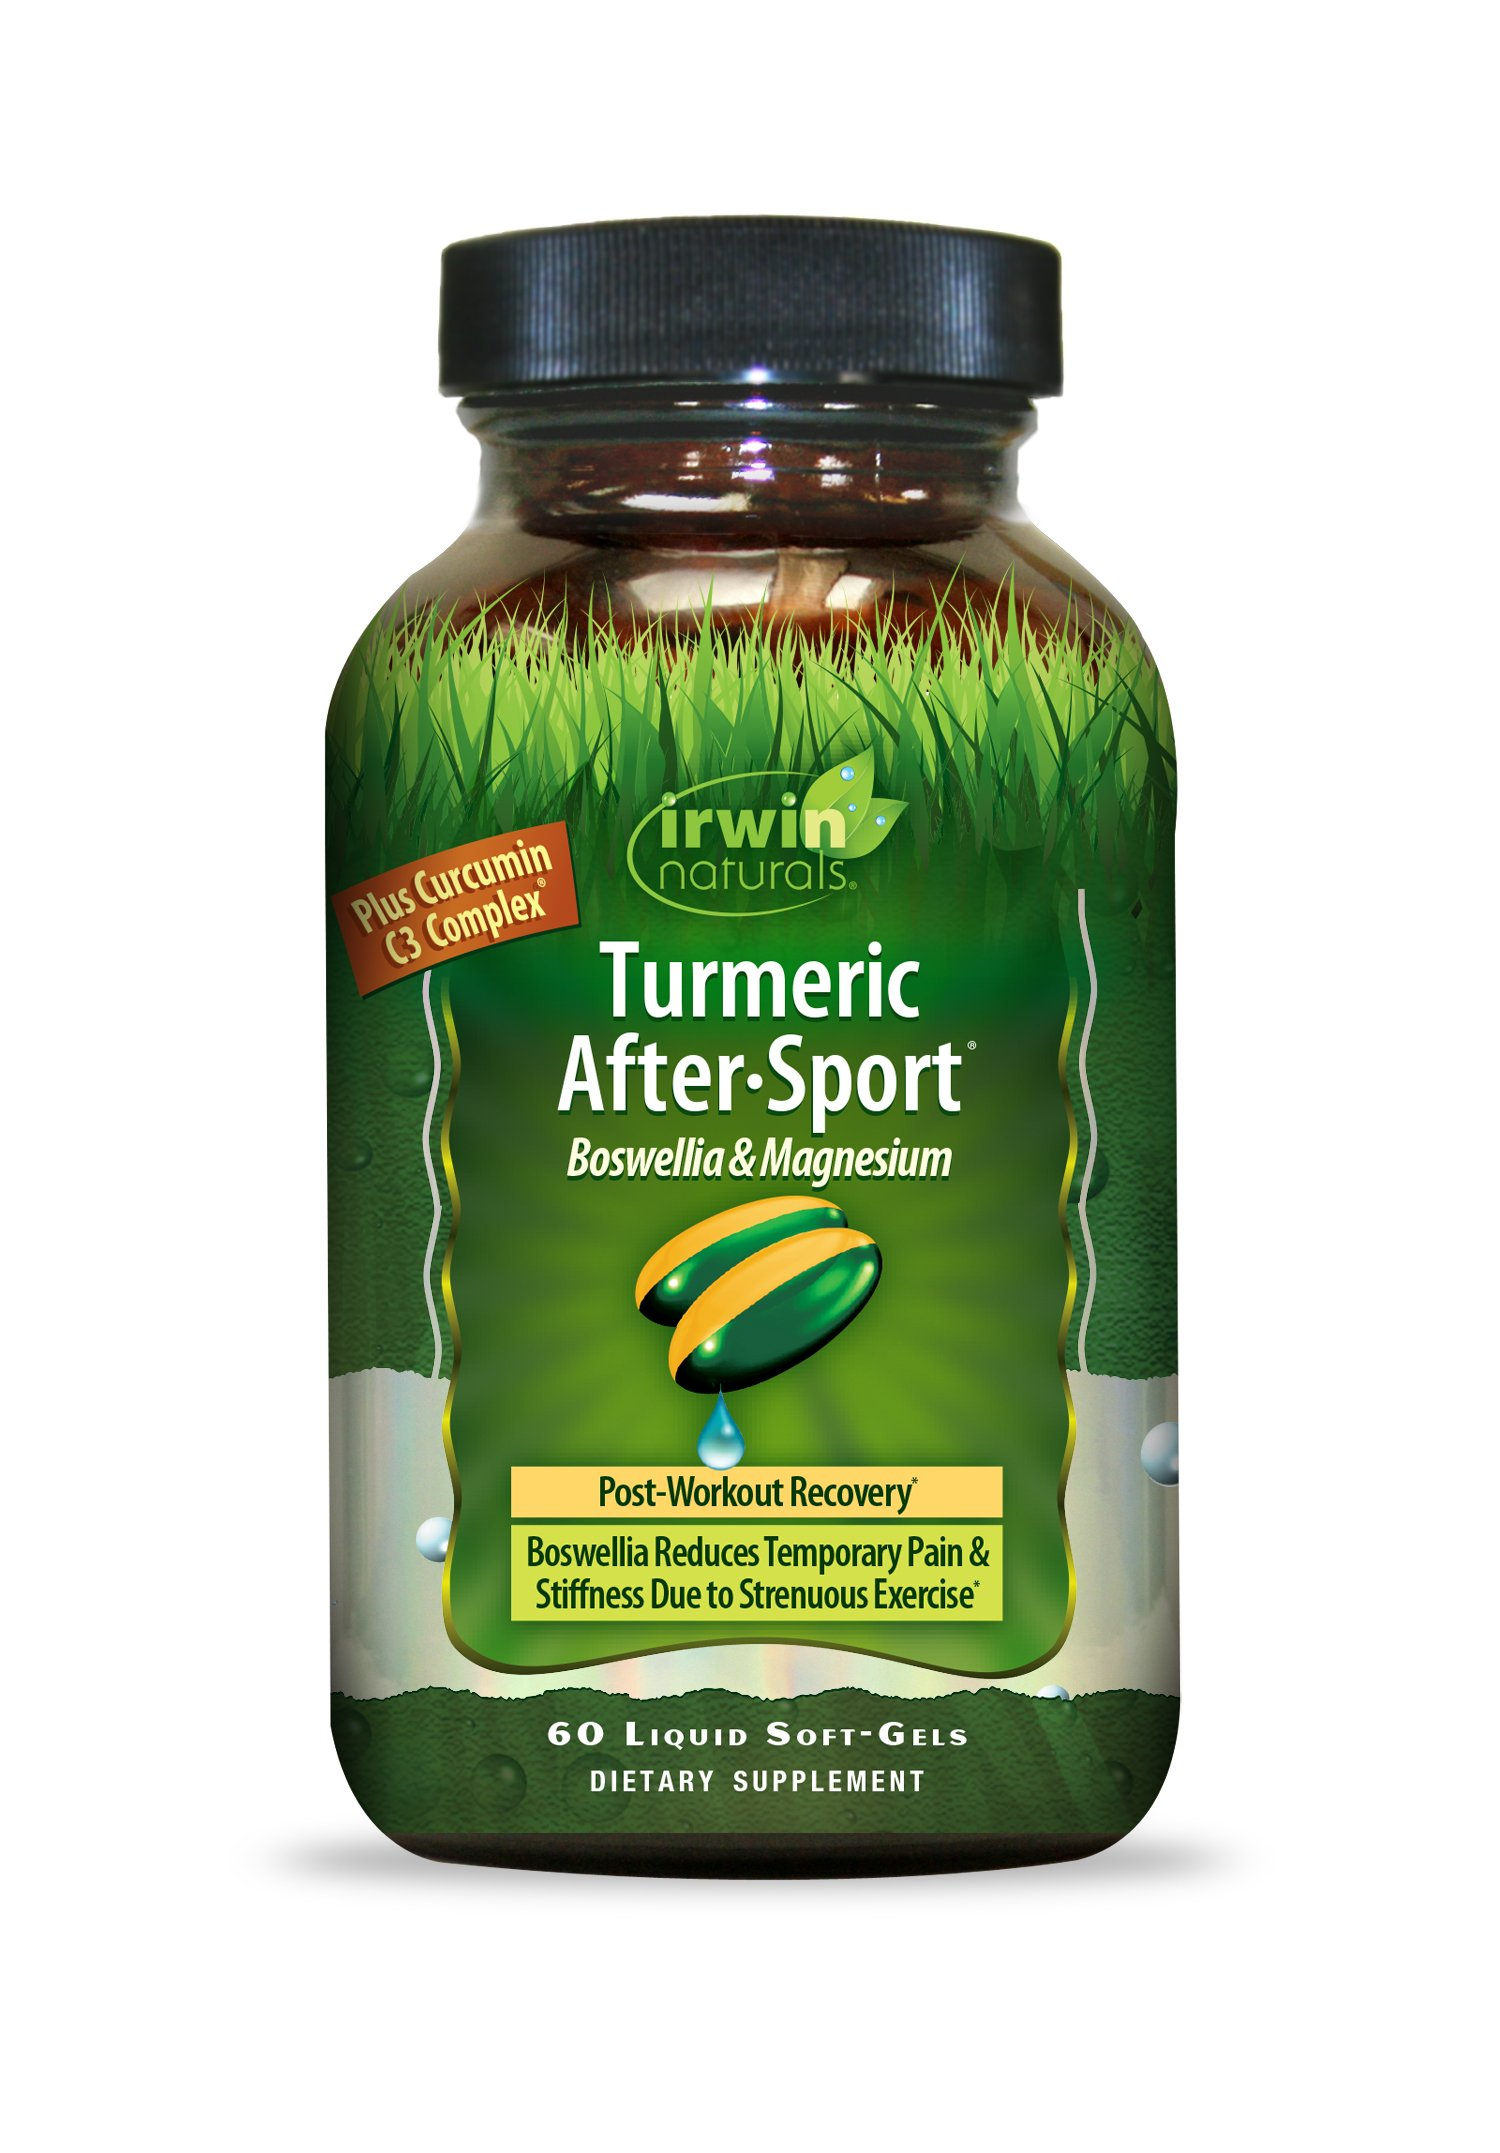 Turmeric After Sport by Irwin Naturals, with Boswellia & Magnesium, Powerful Post-Workout Recovery, 60 Liquid Soft-Gels